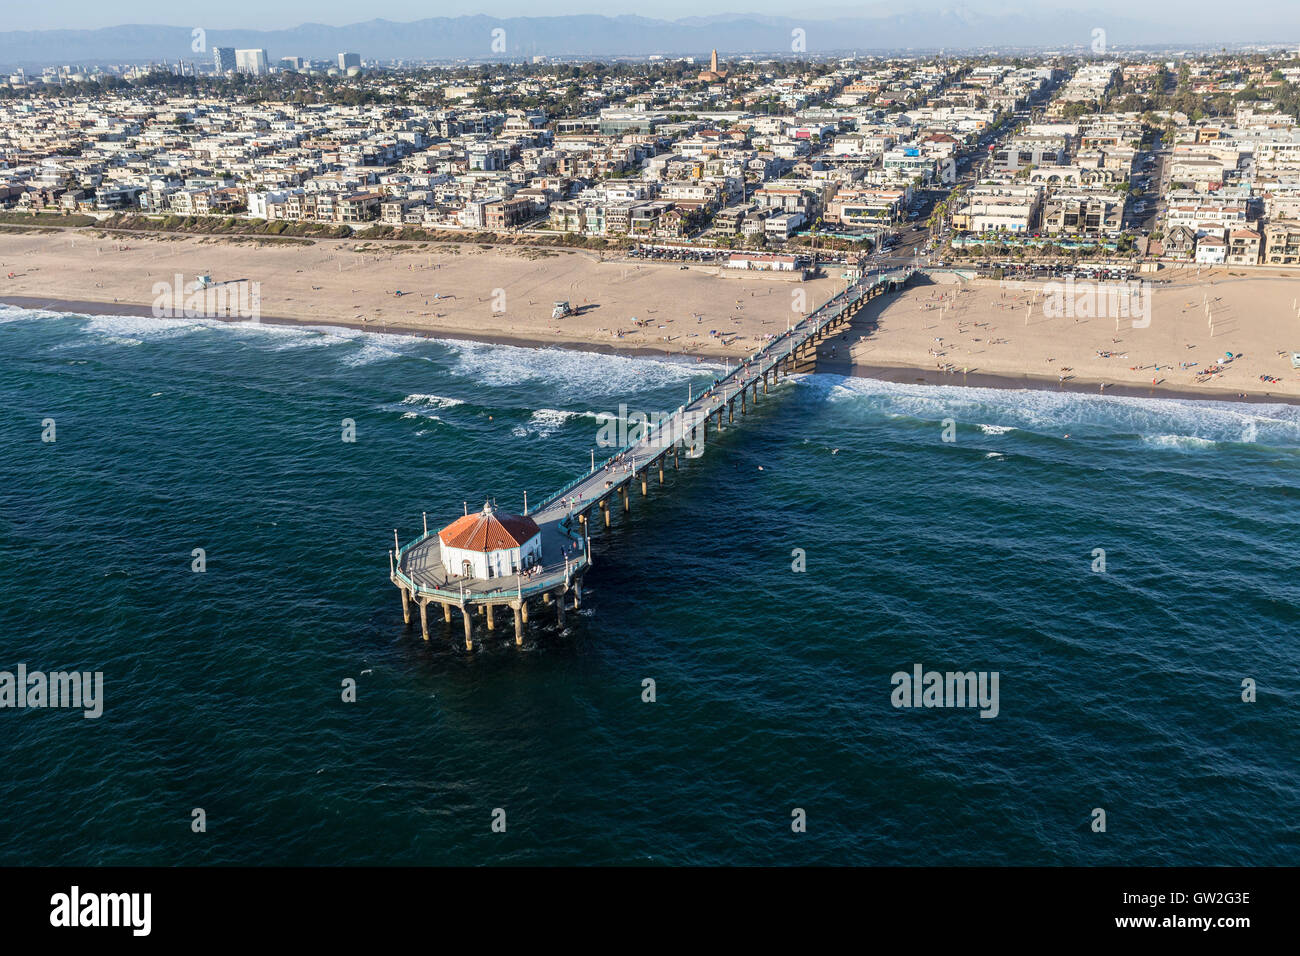 Aerial of Manhattan Beach Pier and the Pacific Ocean in Southern California. - Stock Image